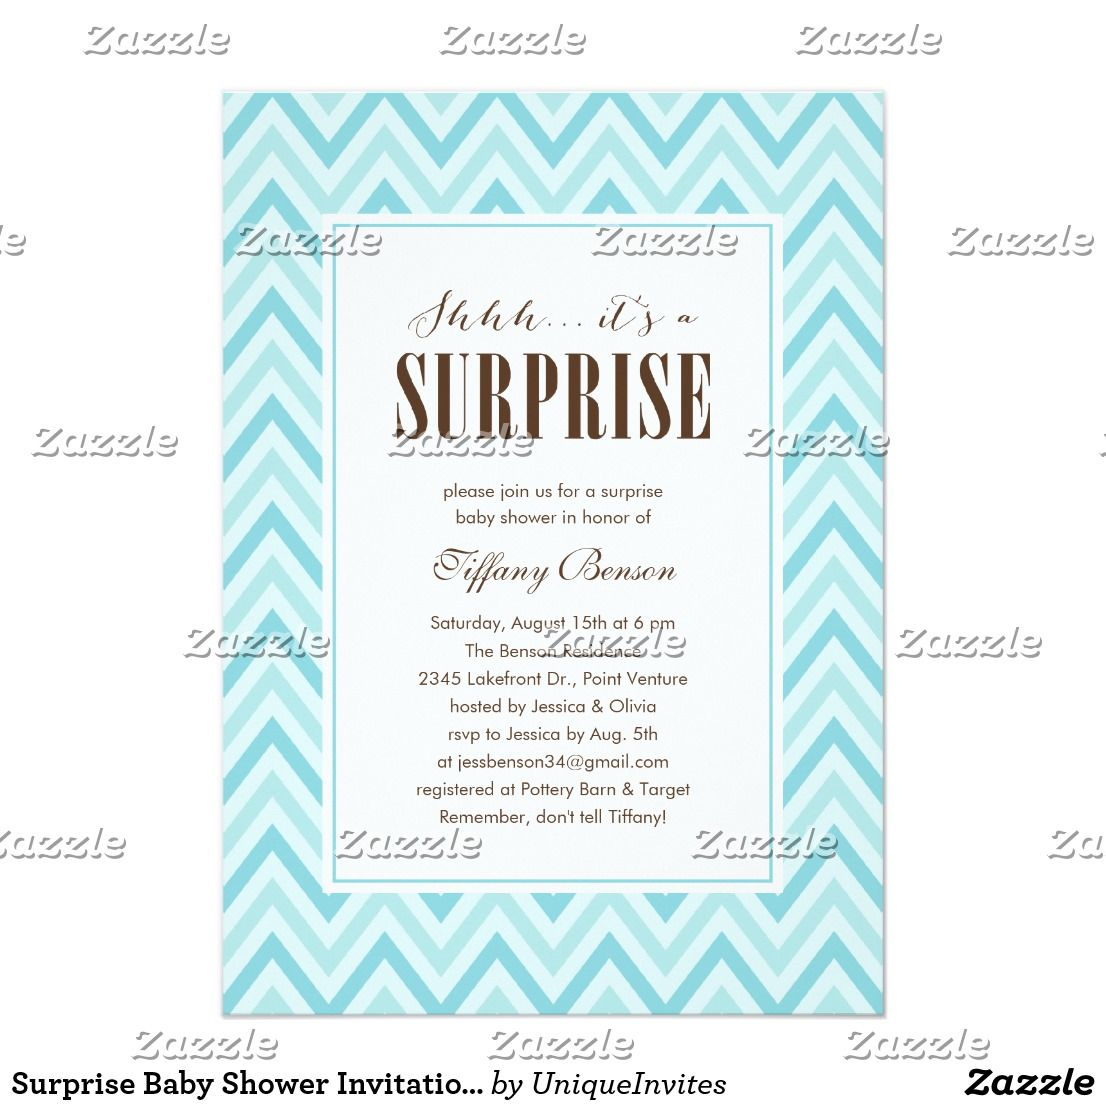 Surprise Baby Shower Invitations Surprise baby shower invitations ...